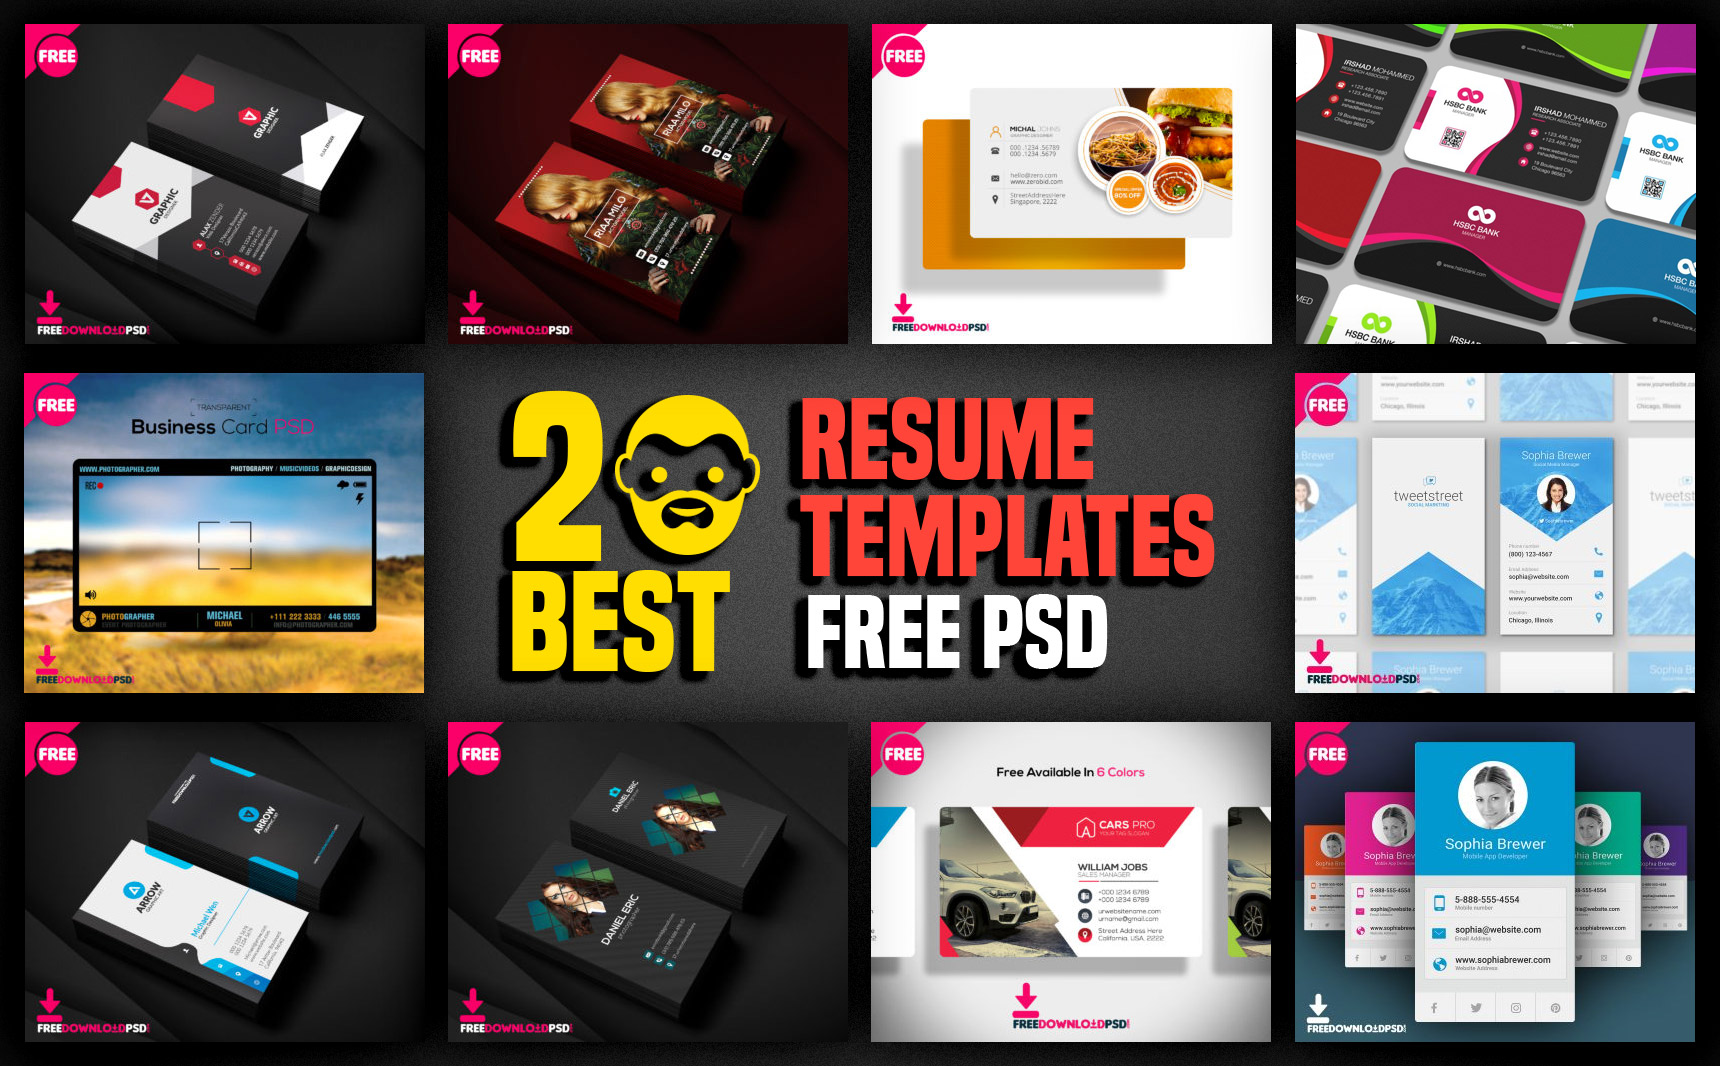 Best Resume Templates Free PSD PsdDaddycom - Cool resume templates free download